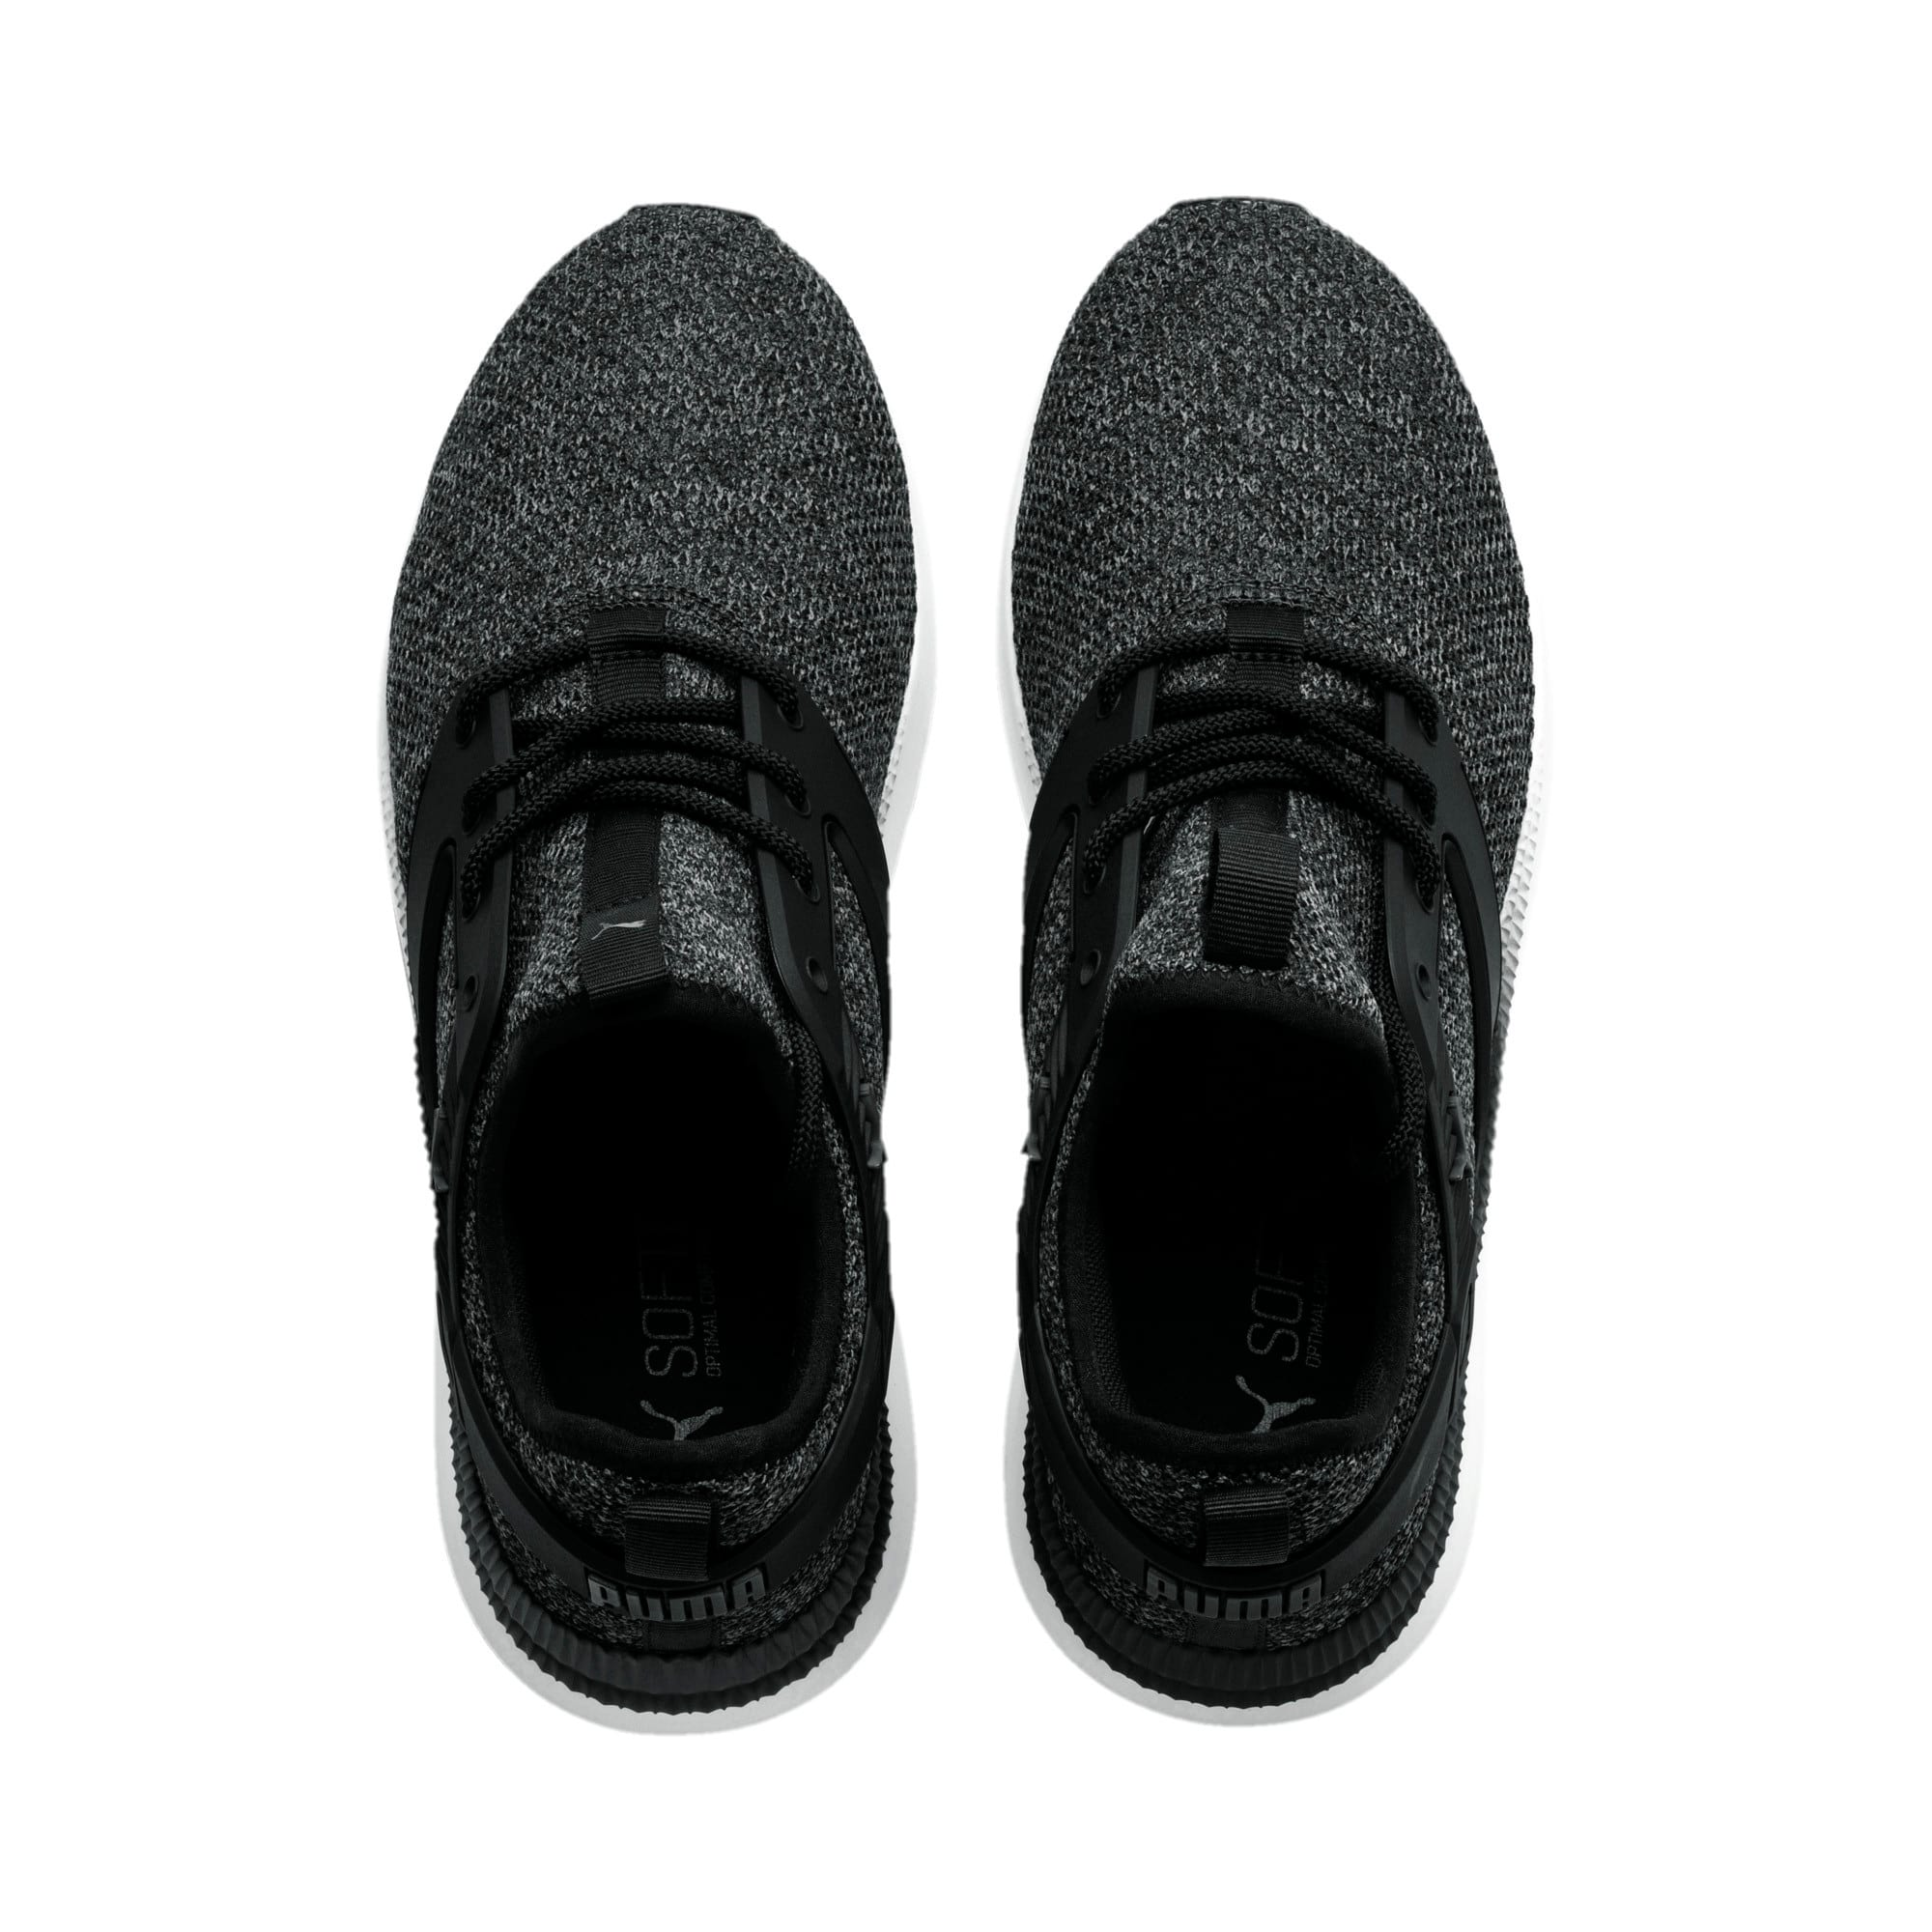 Thumbnail 2 of Pacer Next Excel VariKnit Trainers, Puma Black-Charcoal Gray, medium-IND